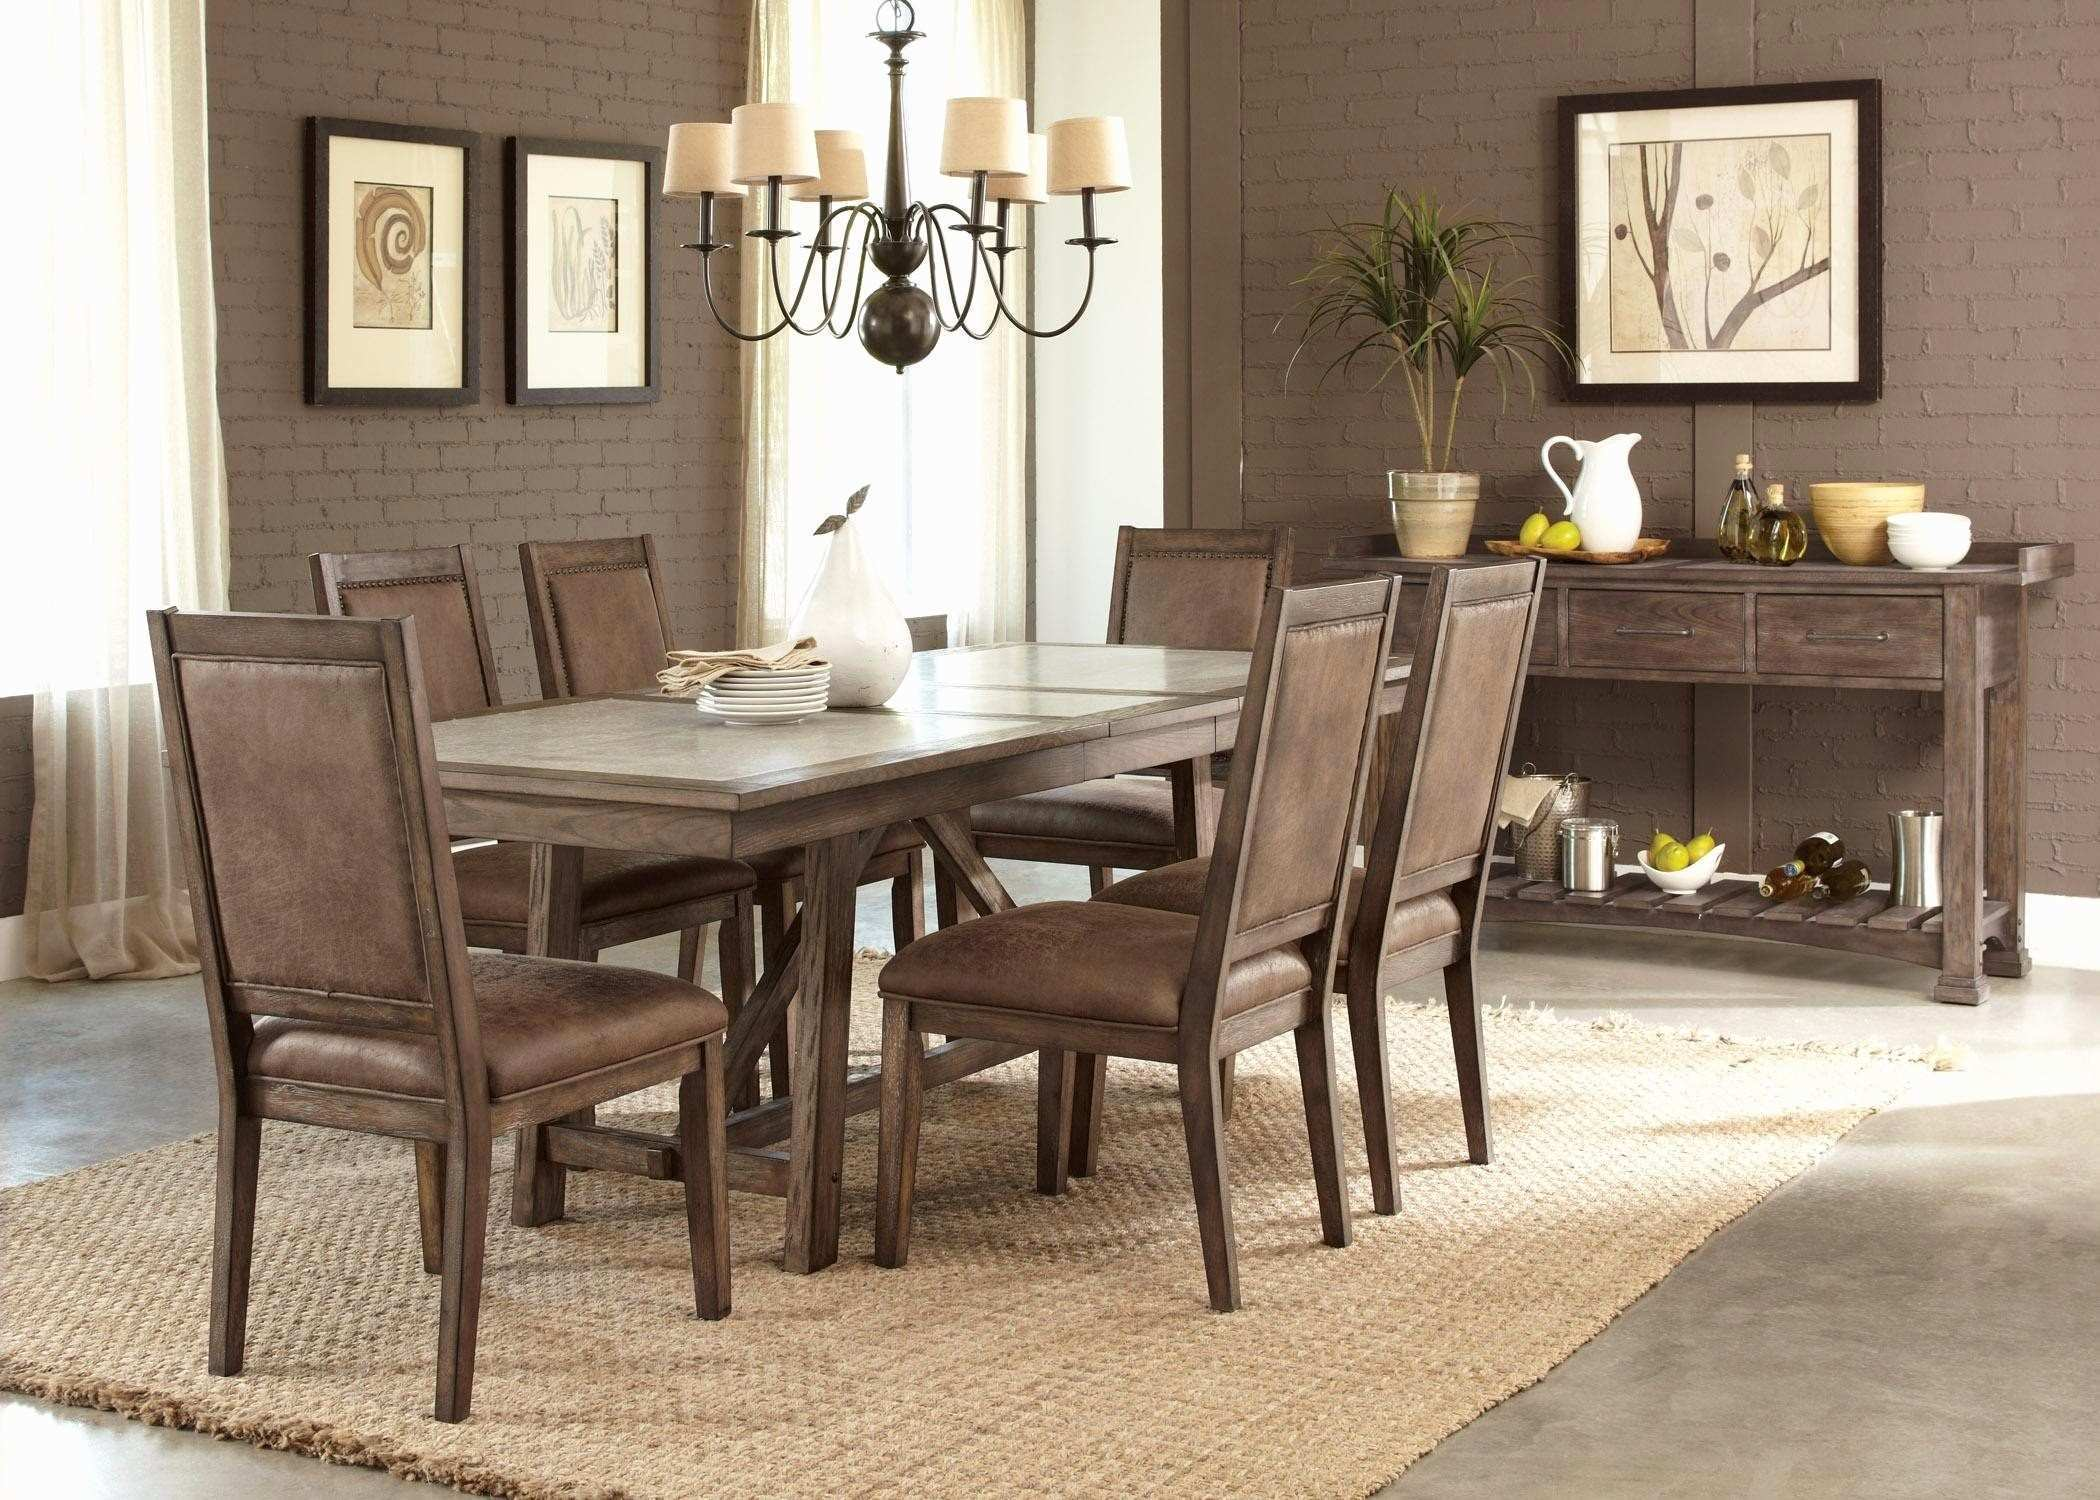 Home Decor Stores In Raleigh Nc Luxury Home Decor Raleigh Nc Fresh